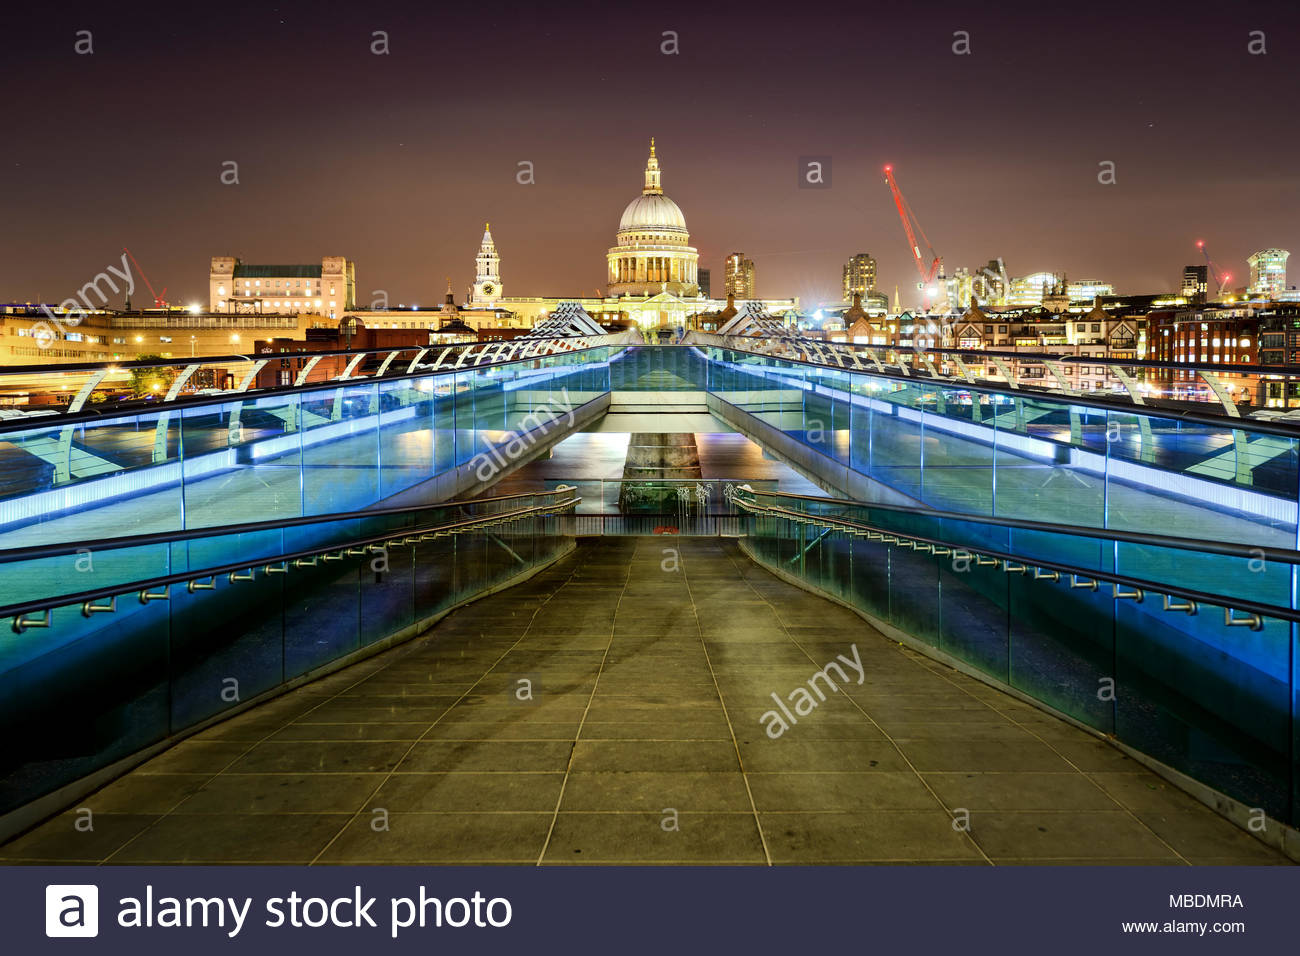 St Paul's Cathedral during night from the Millennium bridge over river Thames, London, United Kingdom. - Stock Image